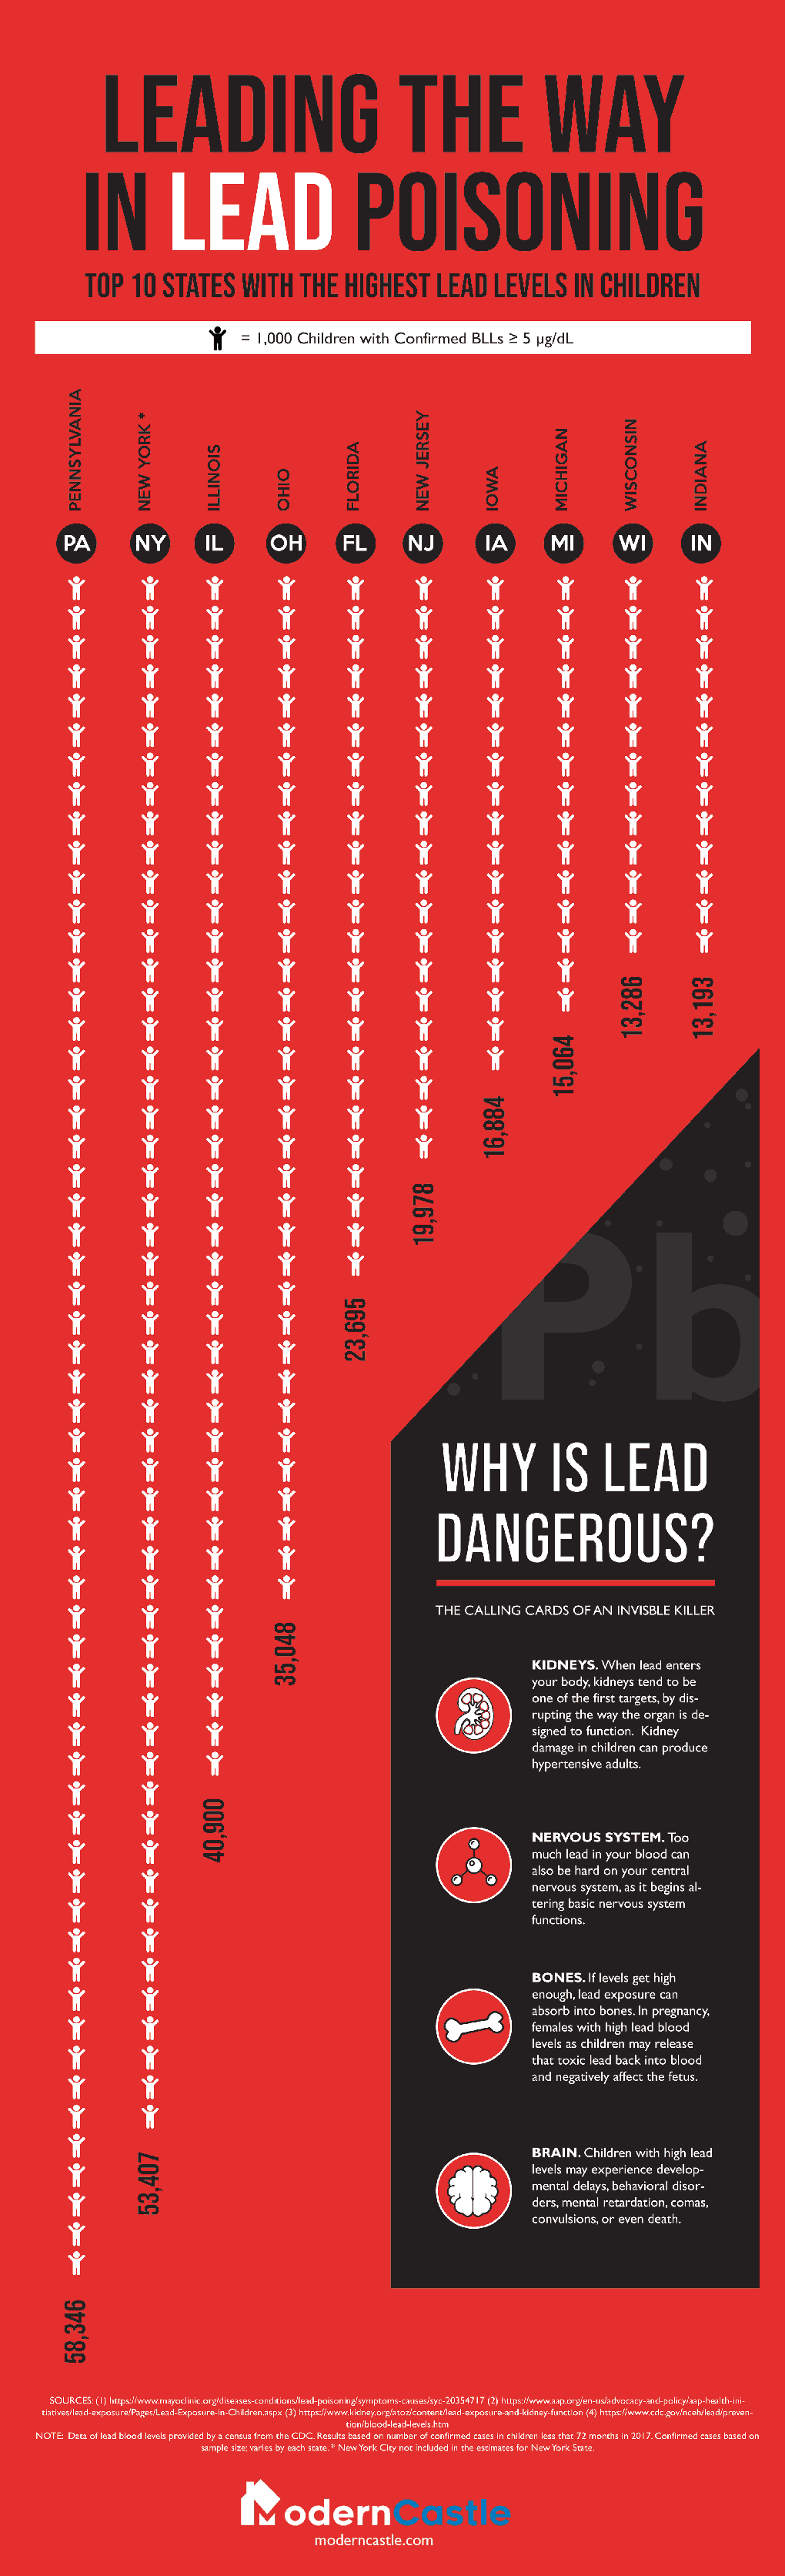 Lead Poisoning Children in the USA